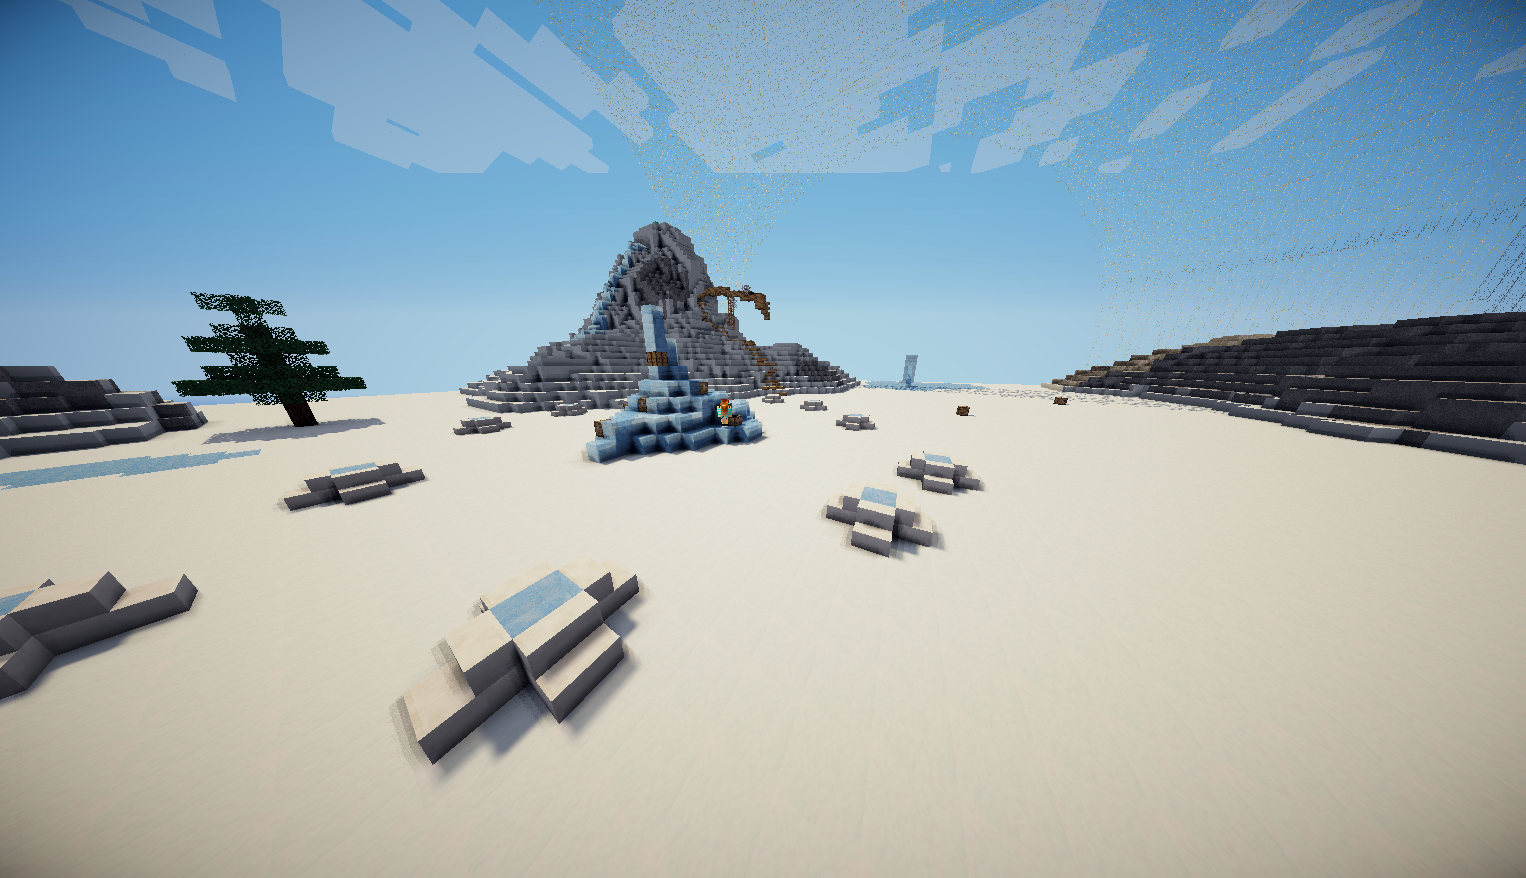 last but not least our custom hunger games map a snow biome austin and i made it ourselves